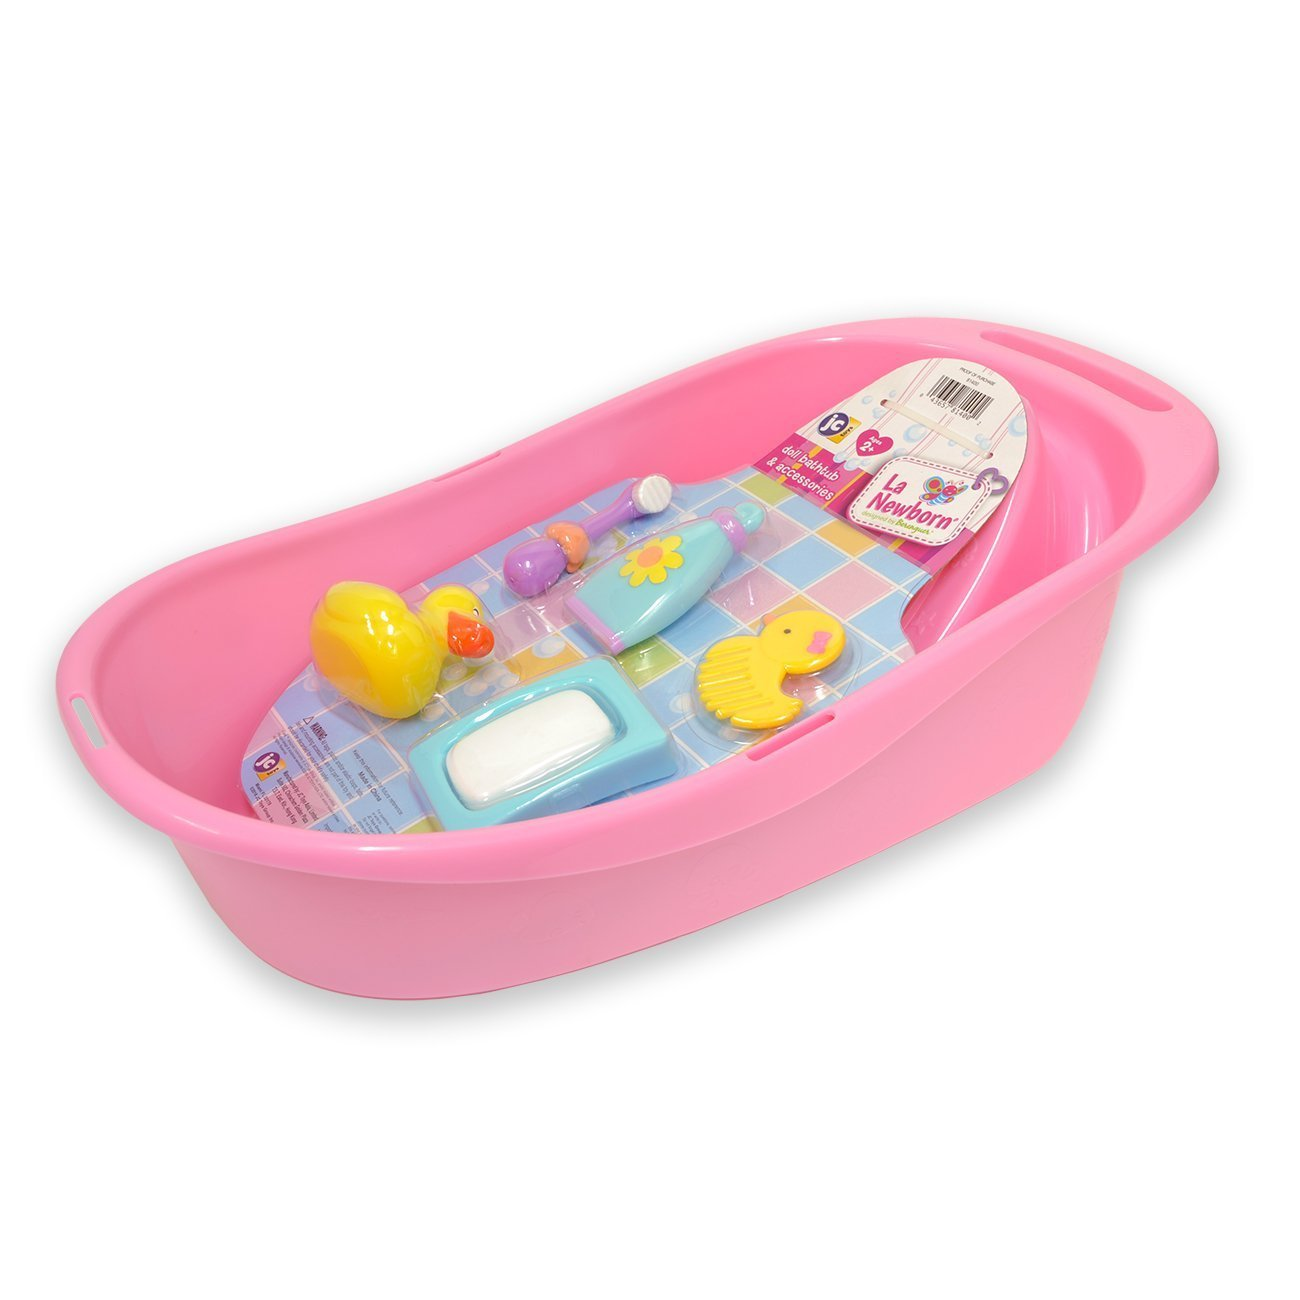 JC Toys 81400 7-Piece Pink Baby Doll Bath Gift Set Fits Most Dolls up to 16 Doll Inc. JC Toys Group